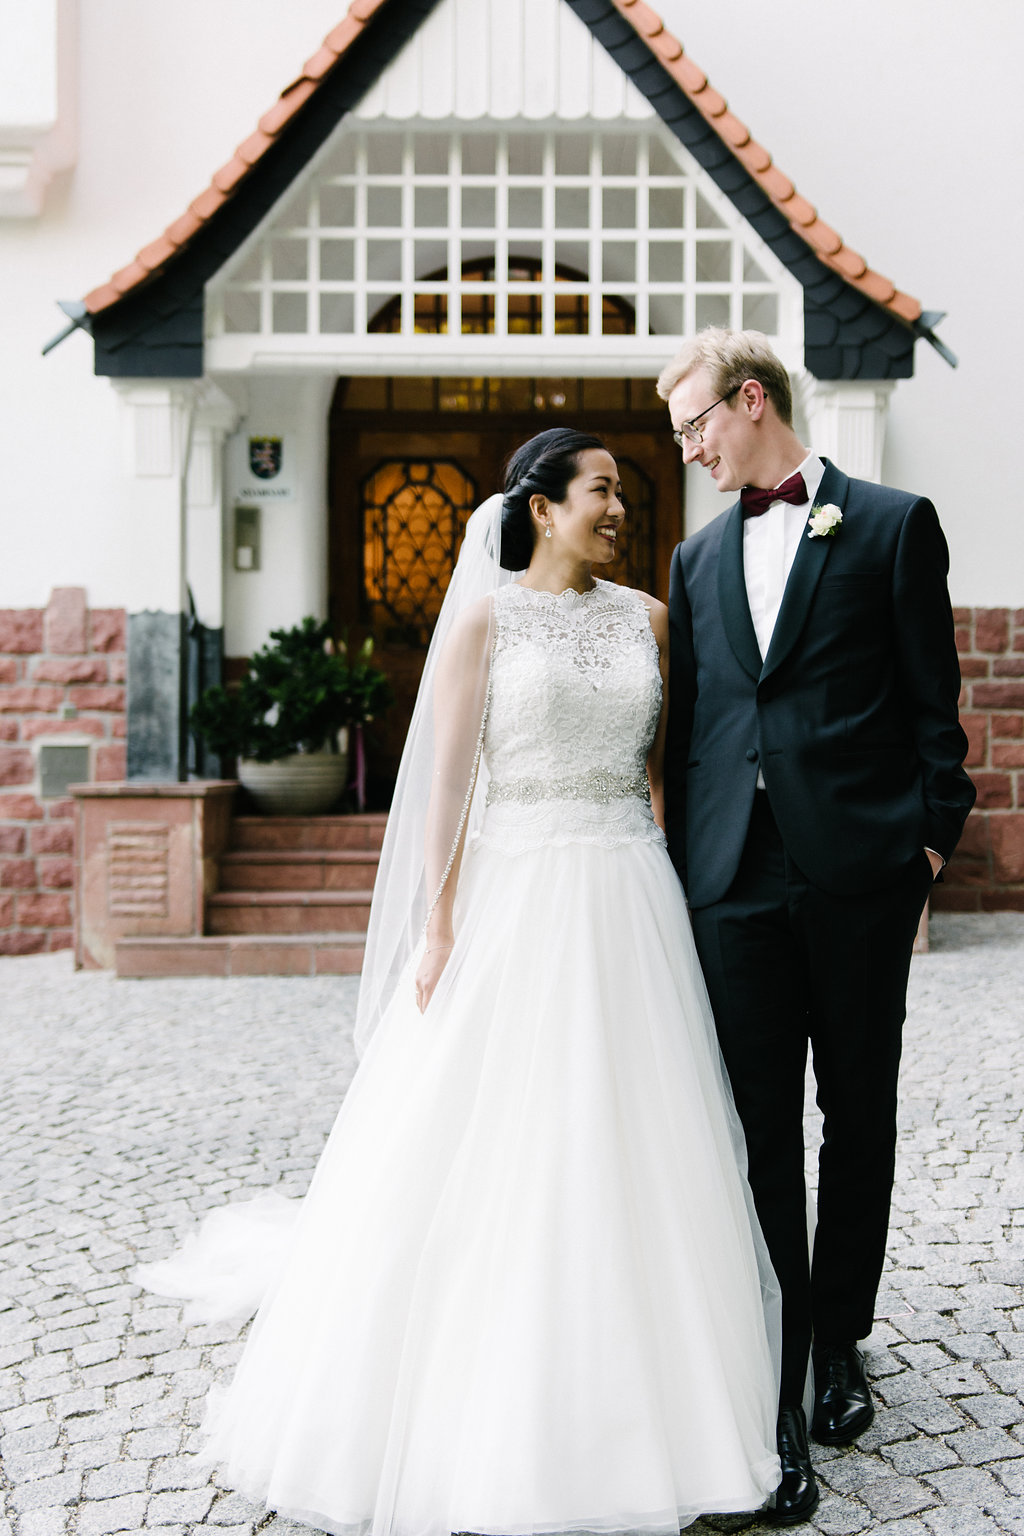 Heiraten im Hoher Darsberg - Photo by Claudia Simchen